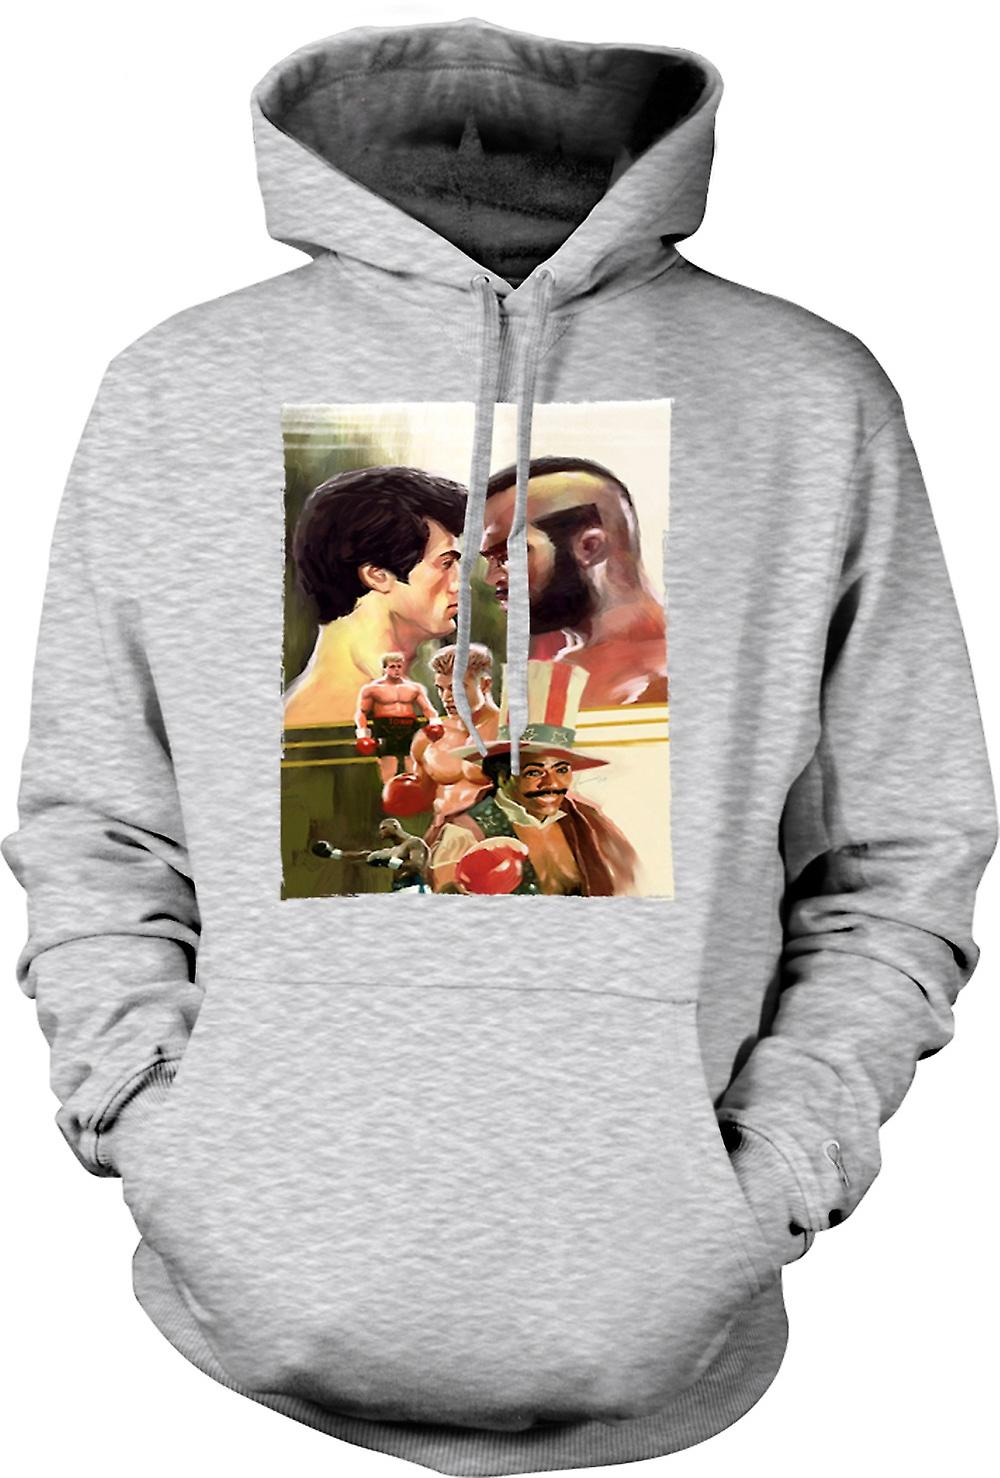 Herren Hoodie - Rocky - Box-Film - Collage